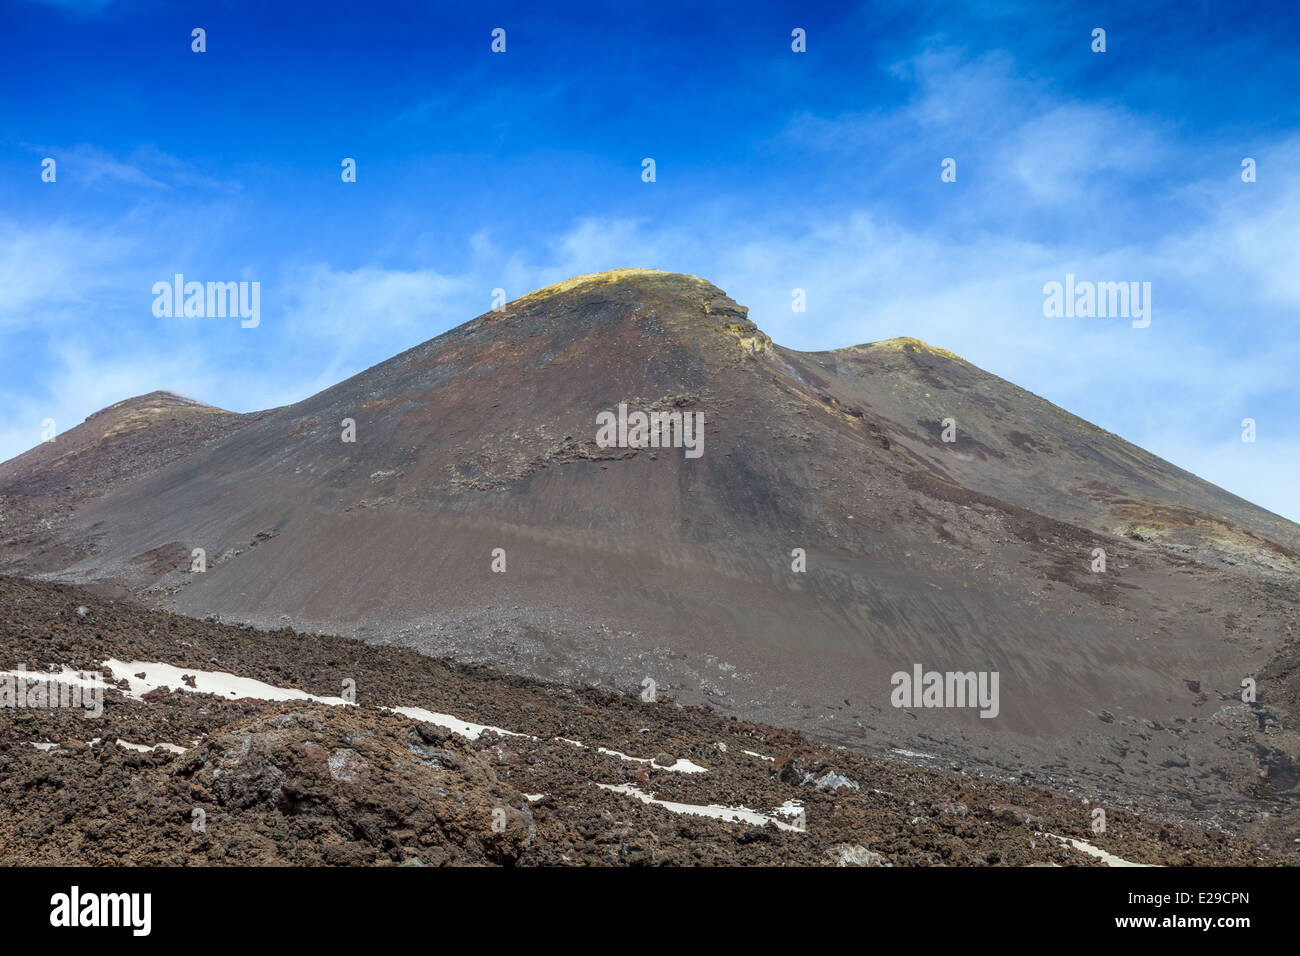 View of mount Etna summit - Stock Image